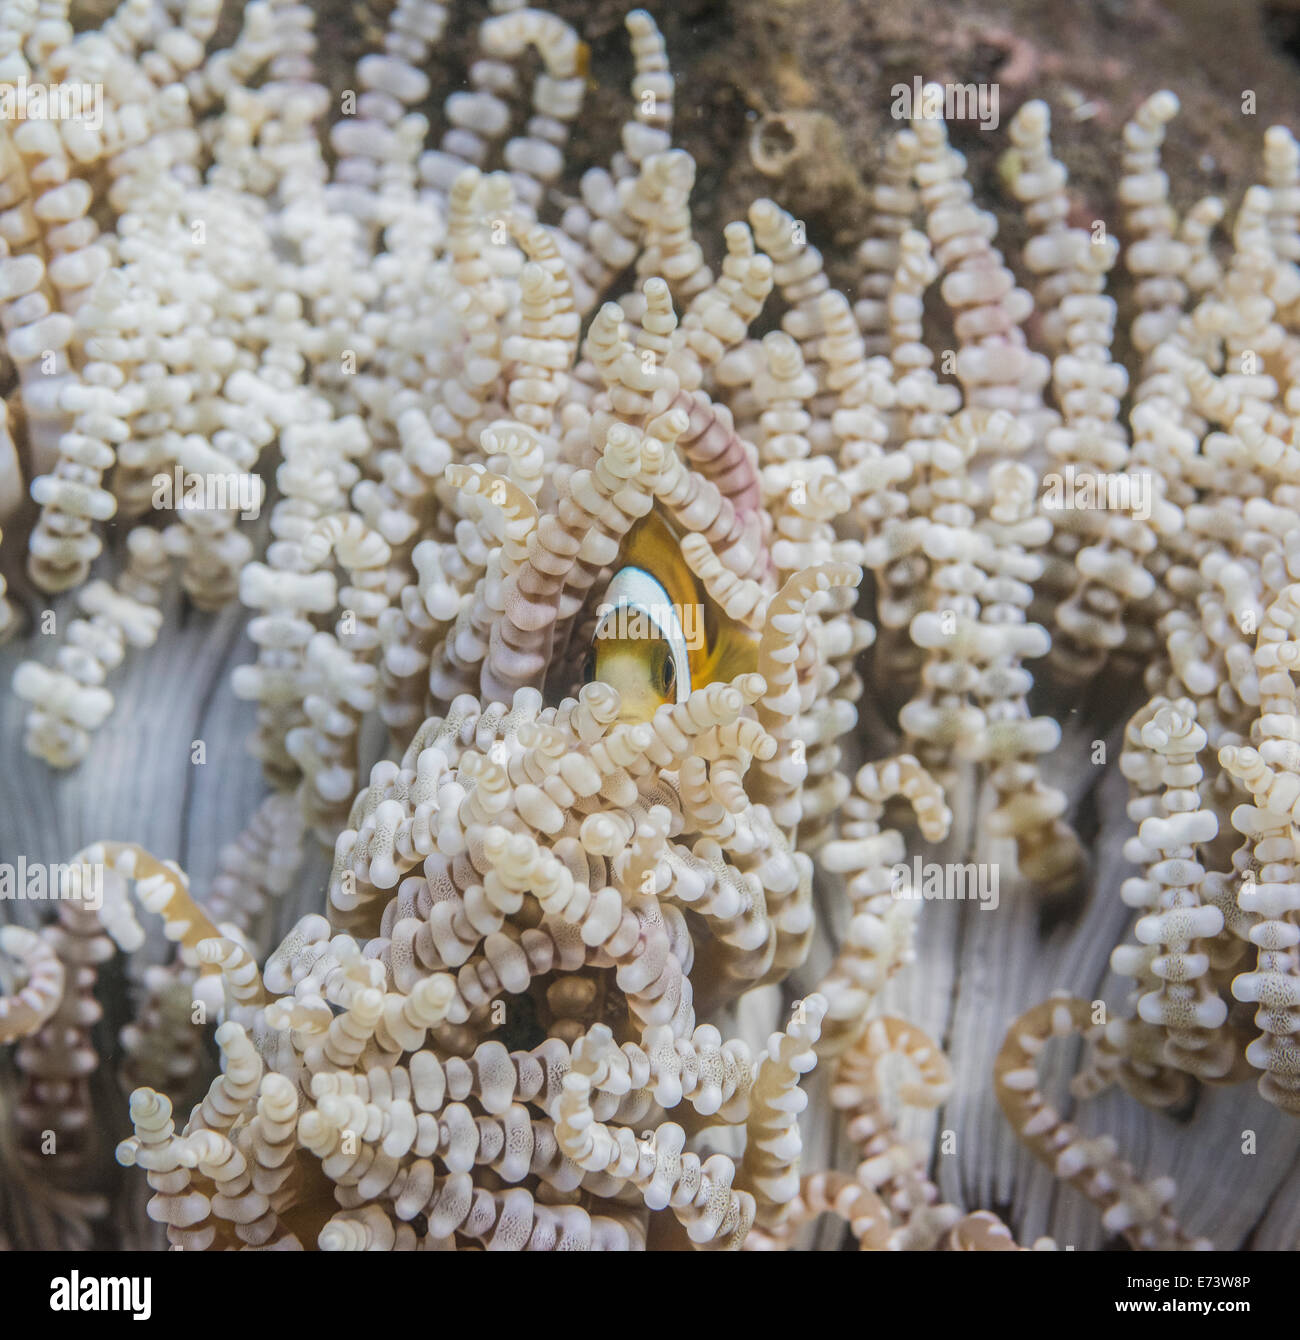 Abstract image of an anemone - Stock Image